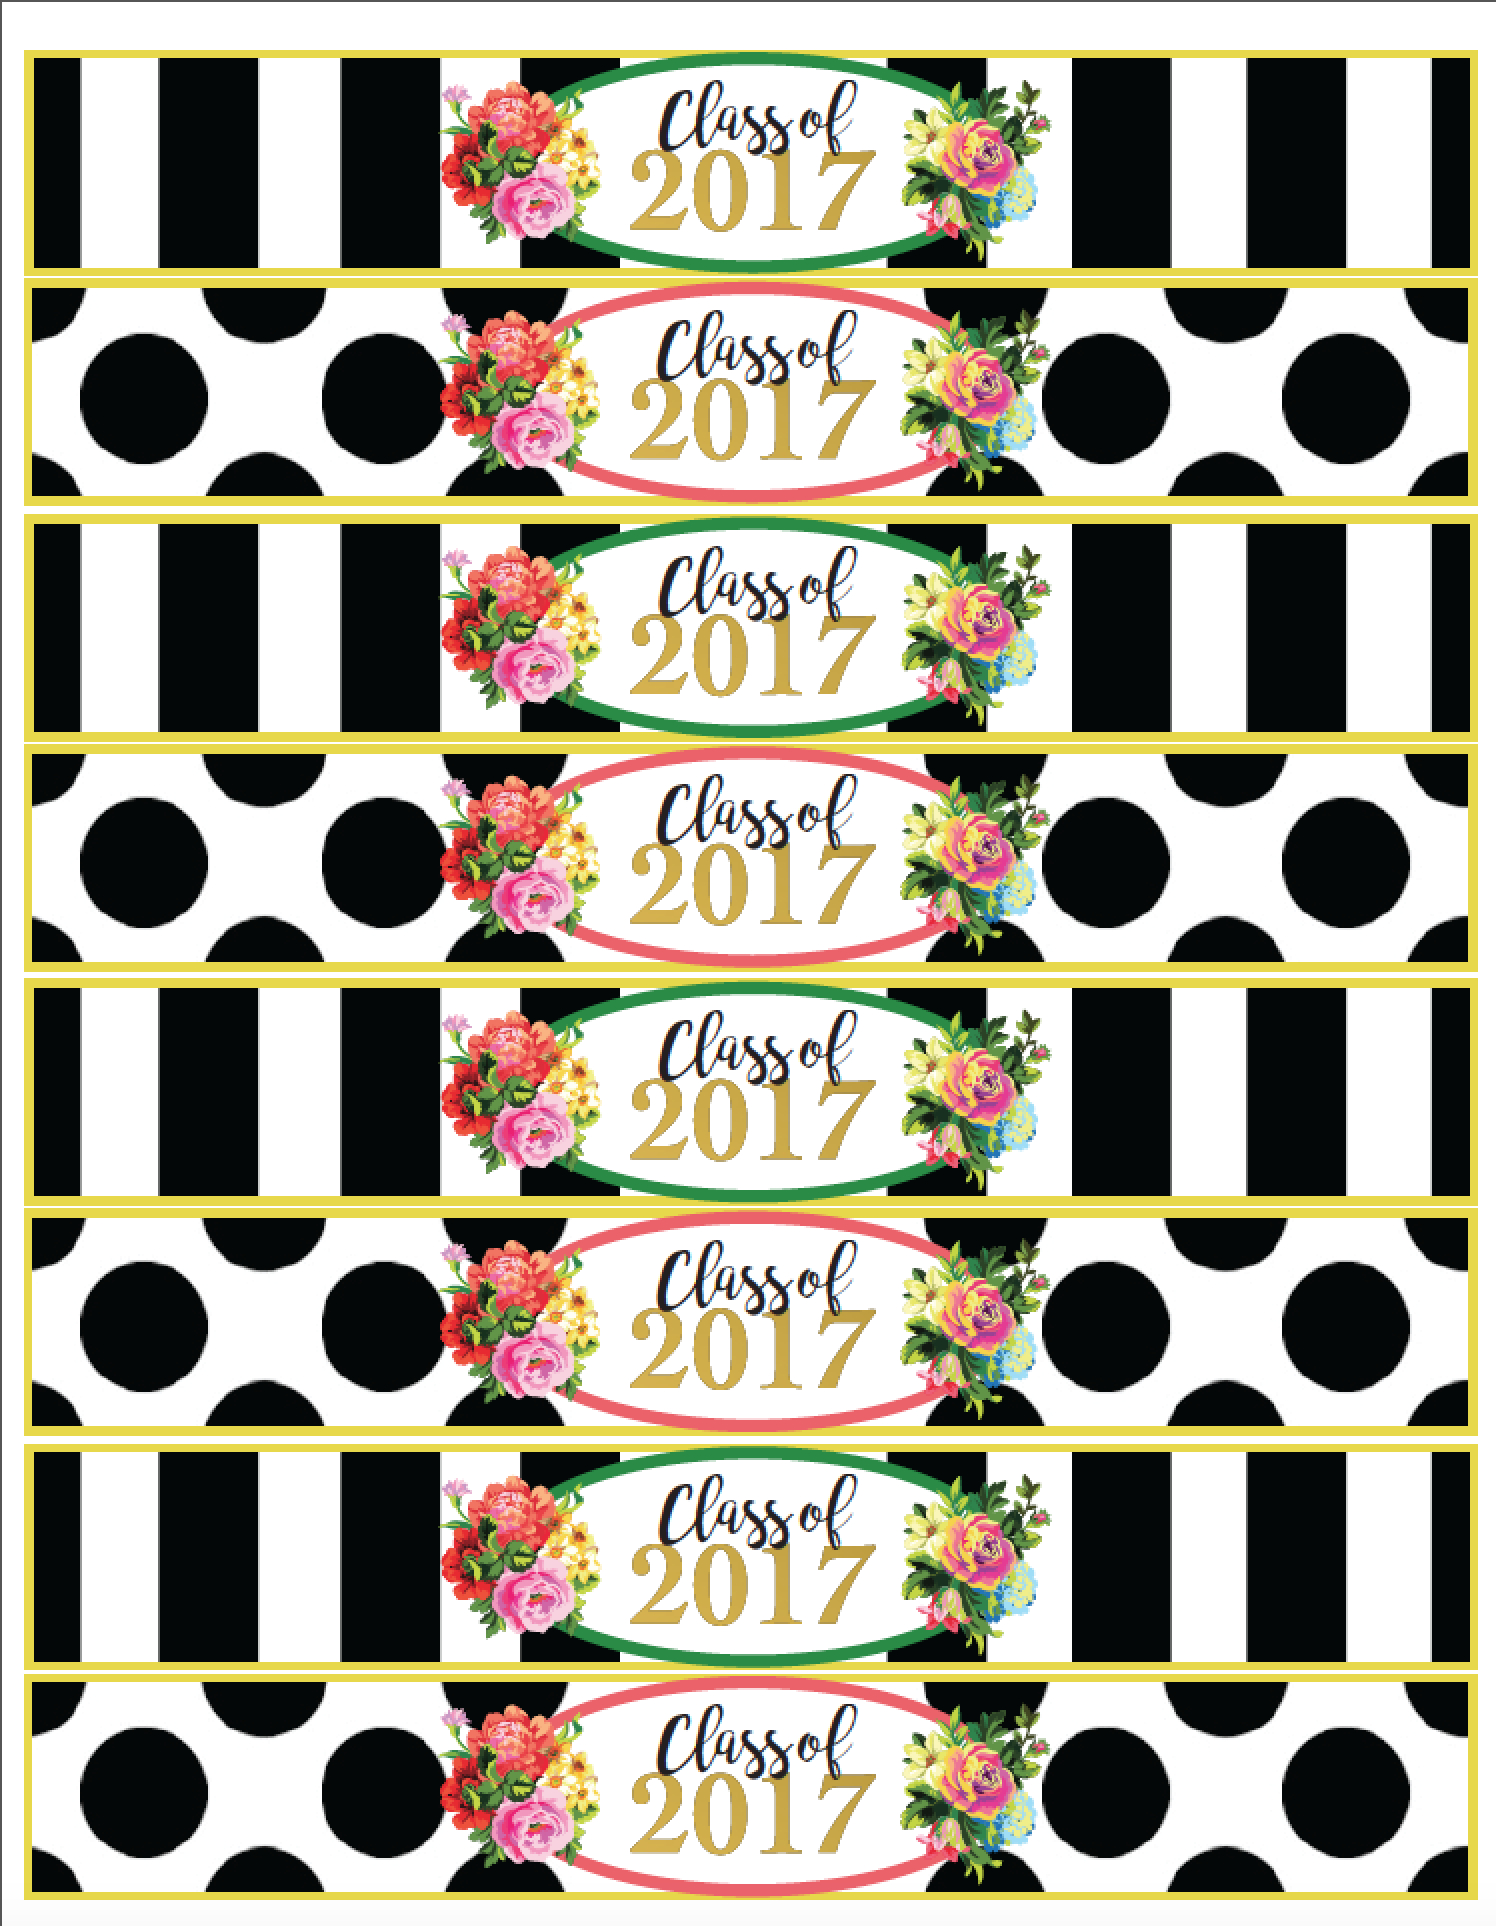 Class Of 2017 Free Floral Graduation Party Printables! | Veronica's - Free Graduation Printables 2017